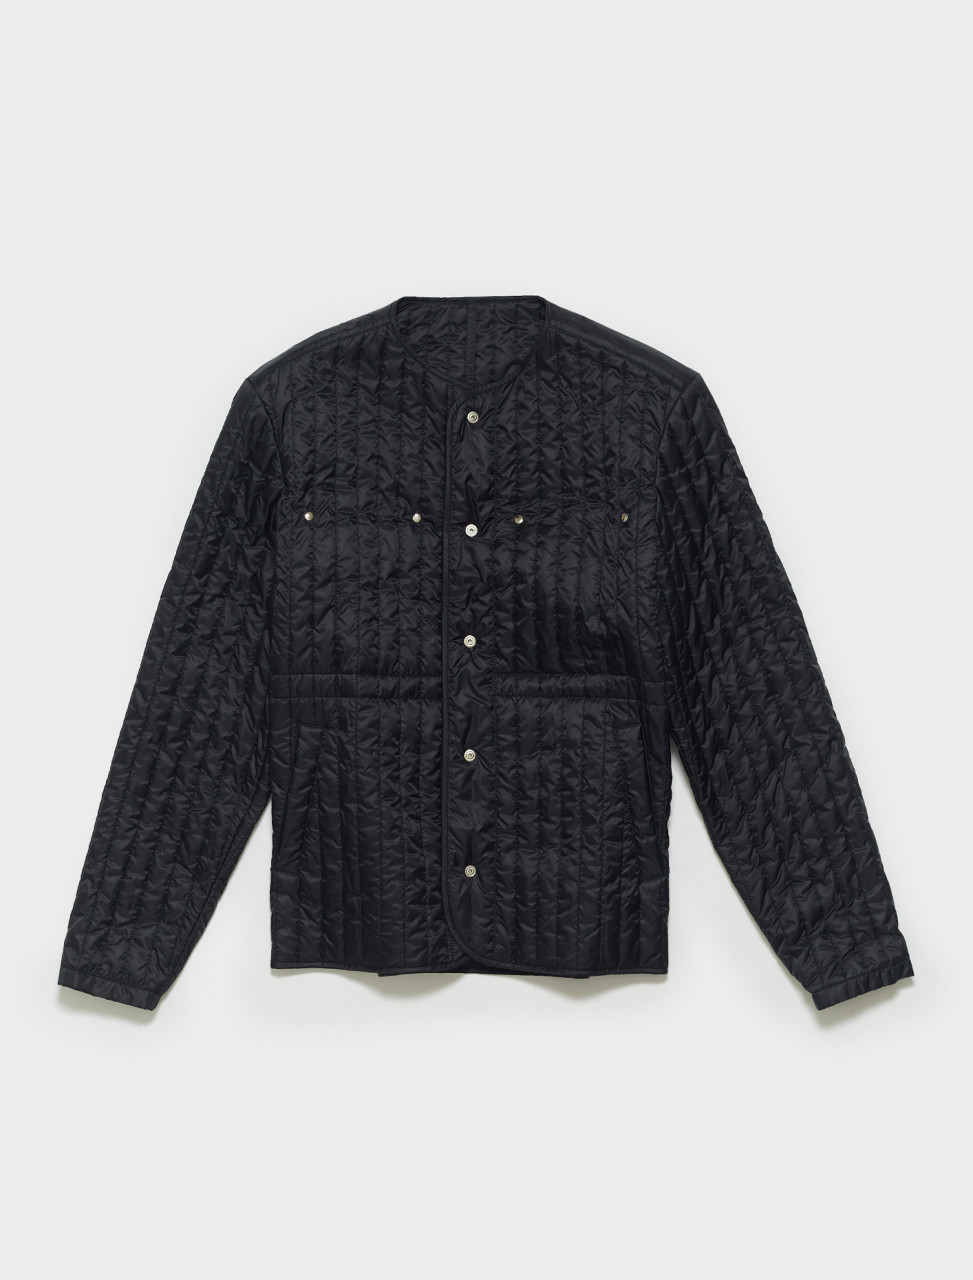 CGSS21CWOJKT11 CRAIG GREEN QUILTED LINER JACKET IN BLACKCGSS21CWOJKT11 CRAIG GREEN QUILTED LINER JACKET IN BLACK